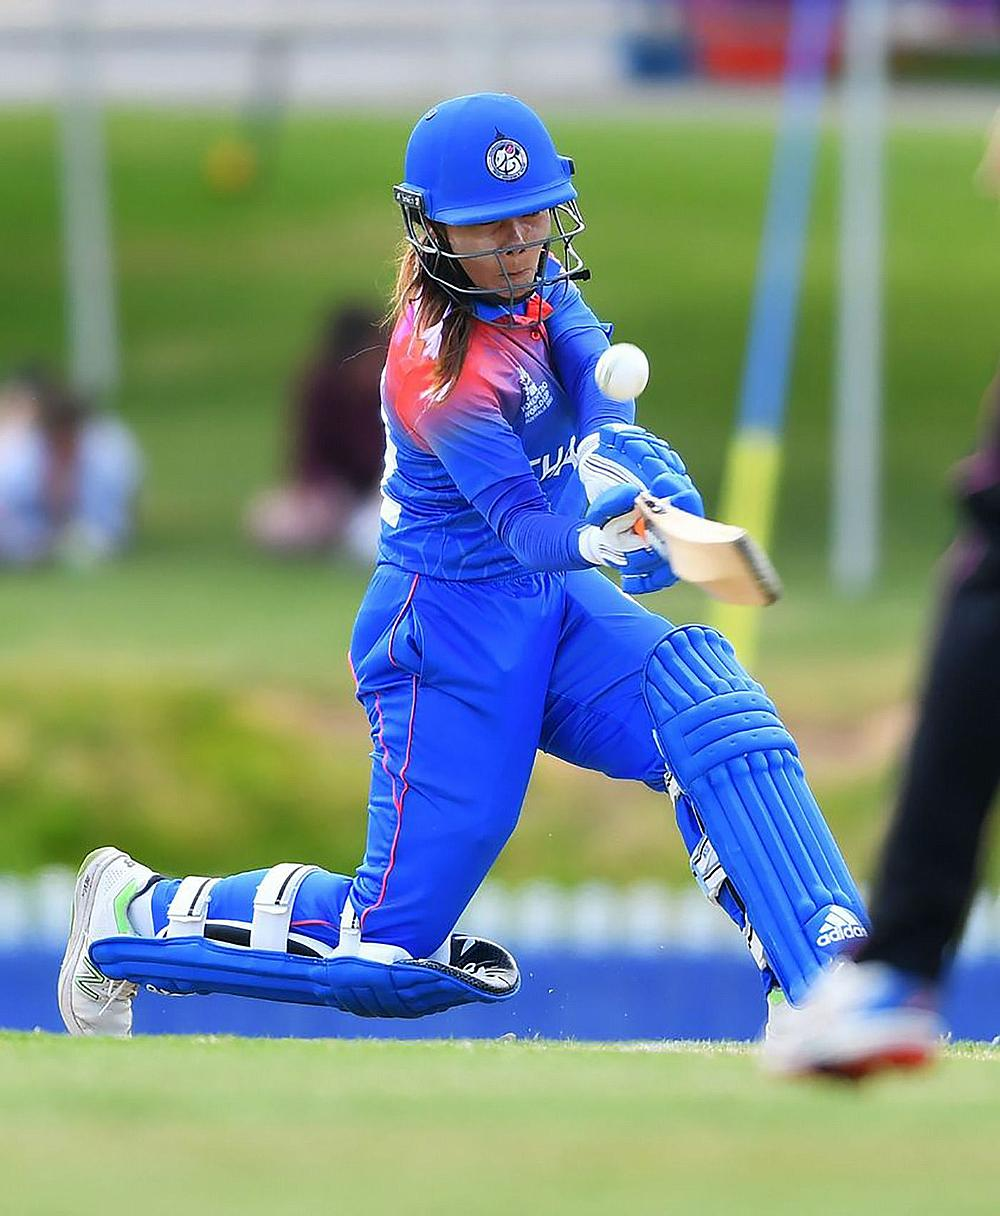 Chanida Sutthiruang of Thailand during the Match: ICC Women's T20 Cricket World Cup warm up match between New Zealand and Thailand at Karen Rolton Ova